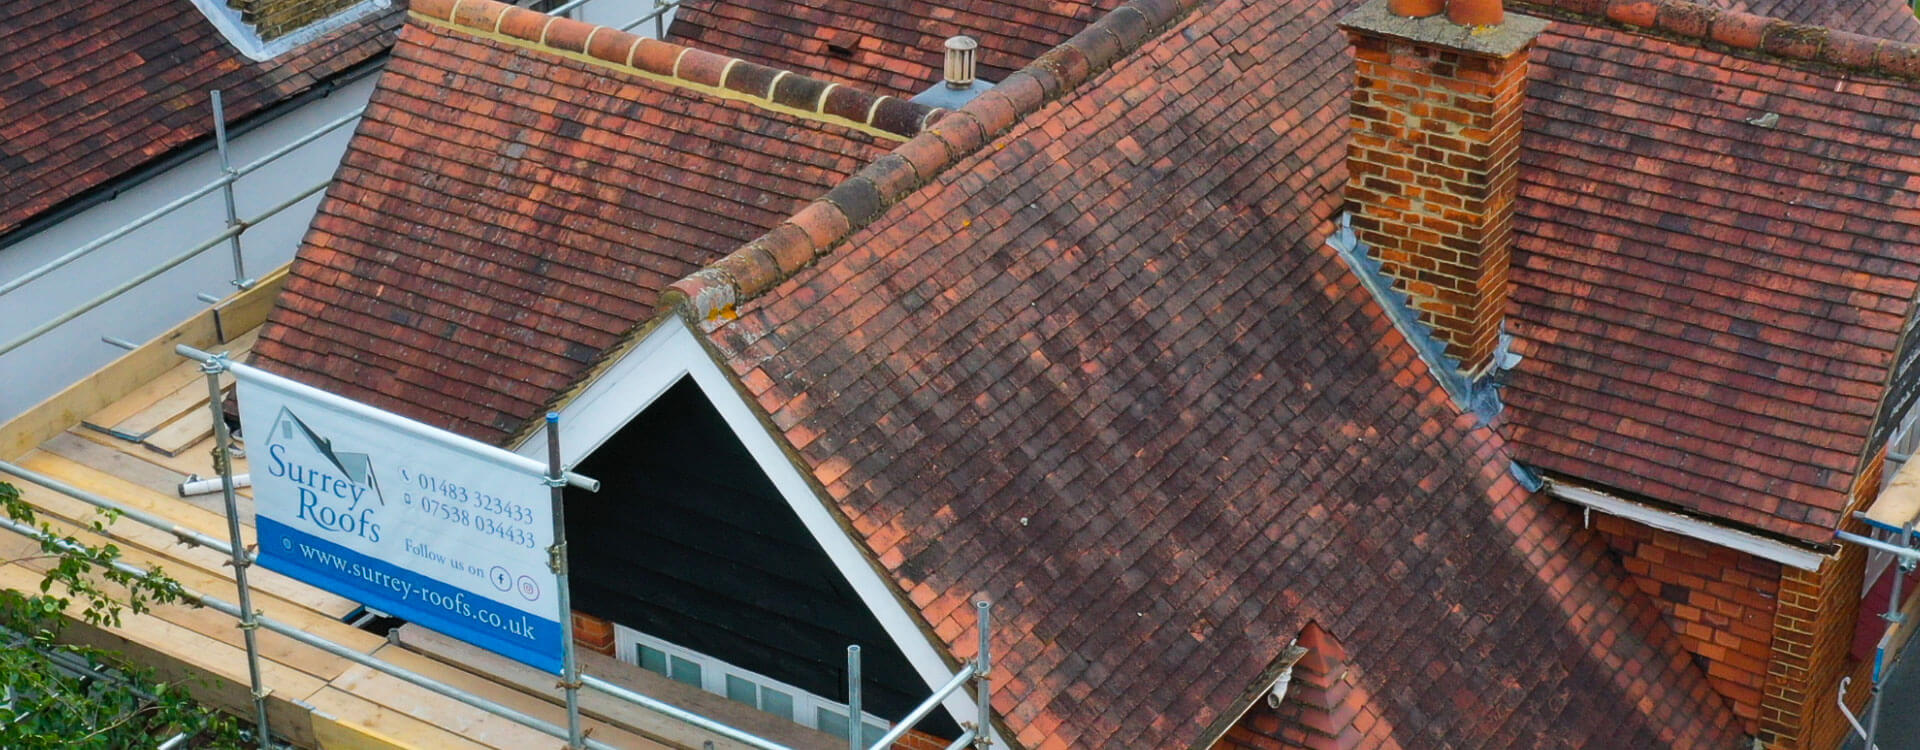 SURREY ROOFS<br/>ROOFING SPECIALISTS